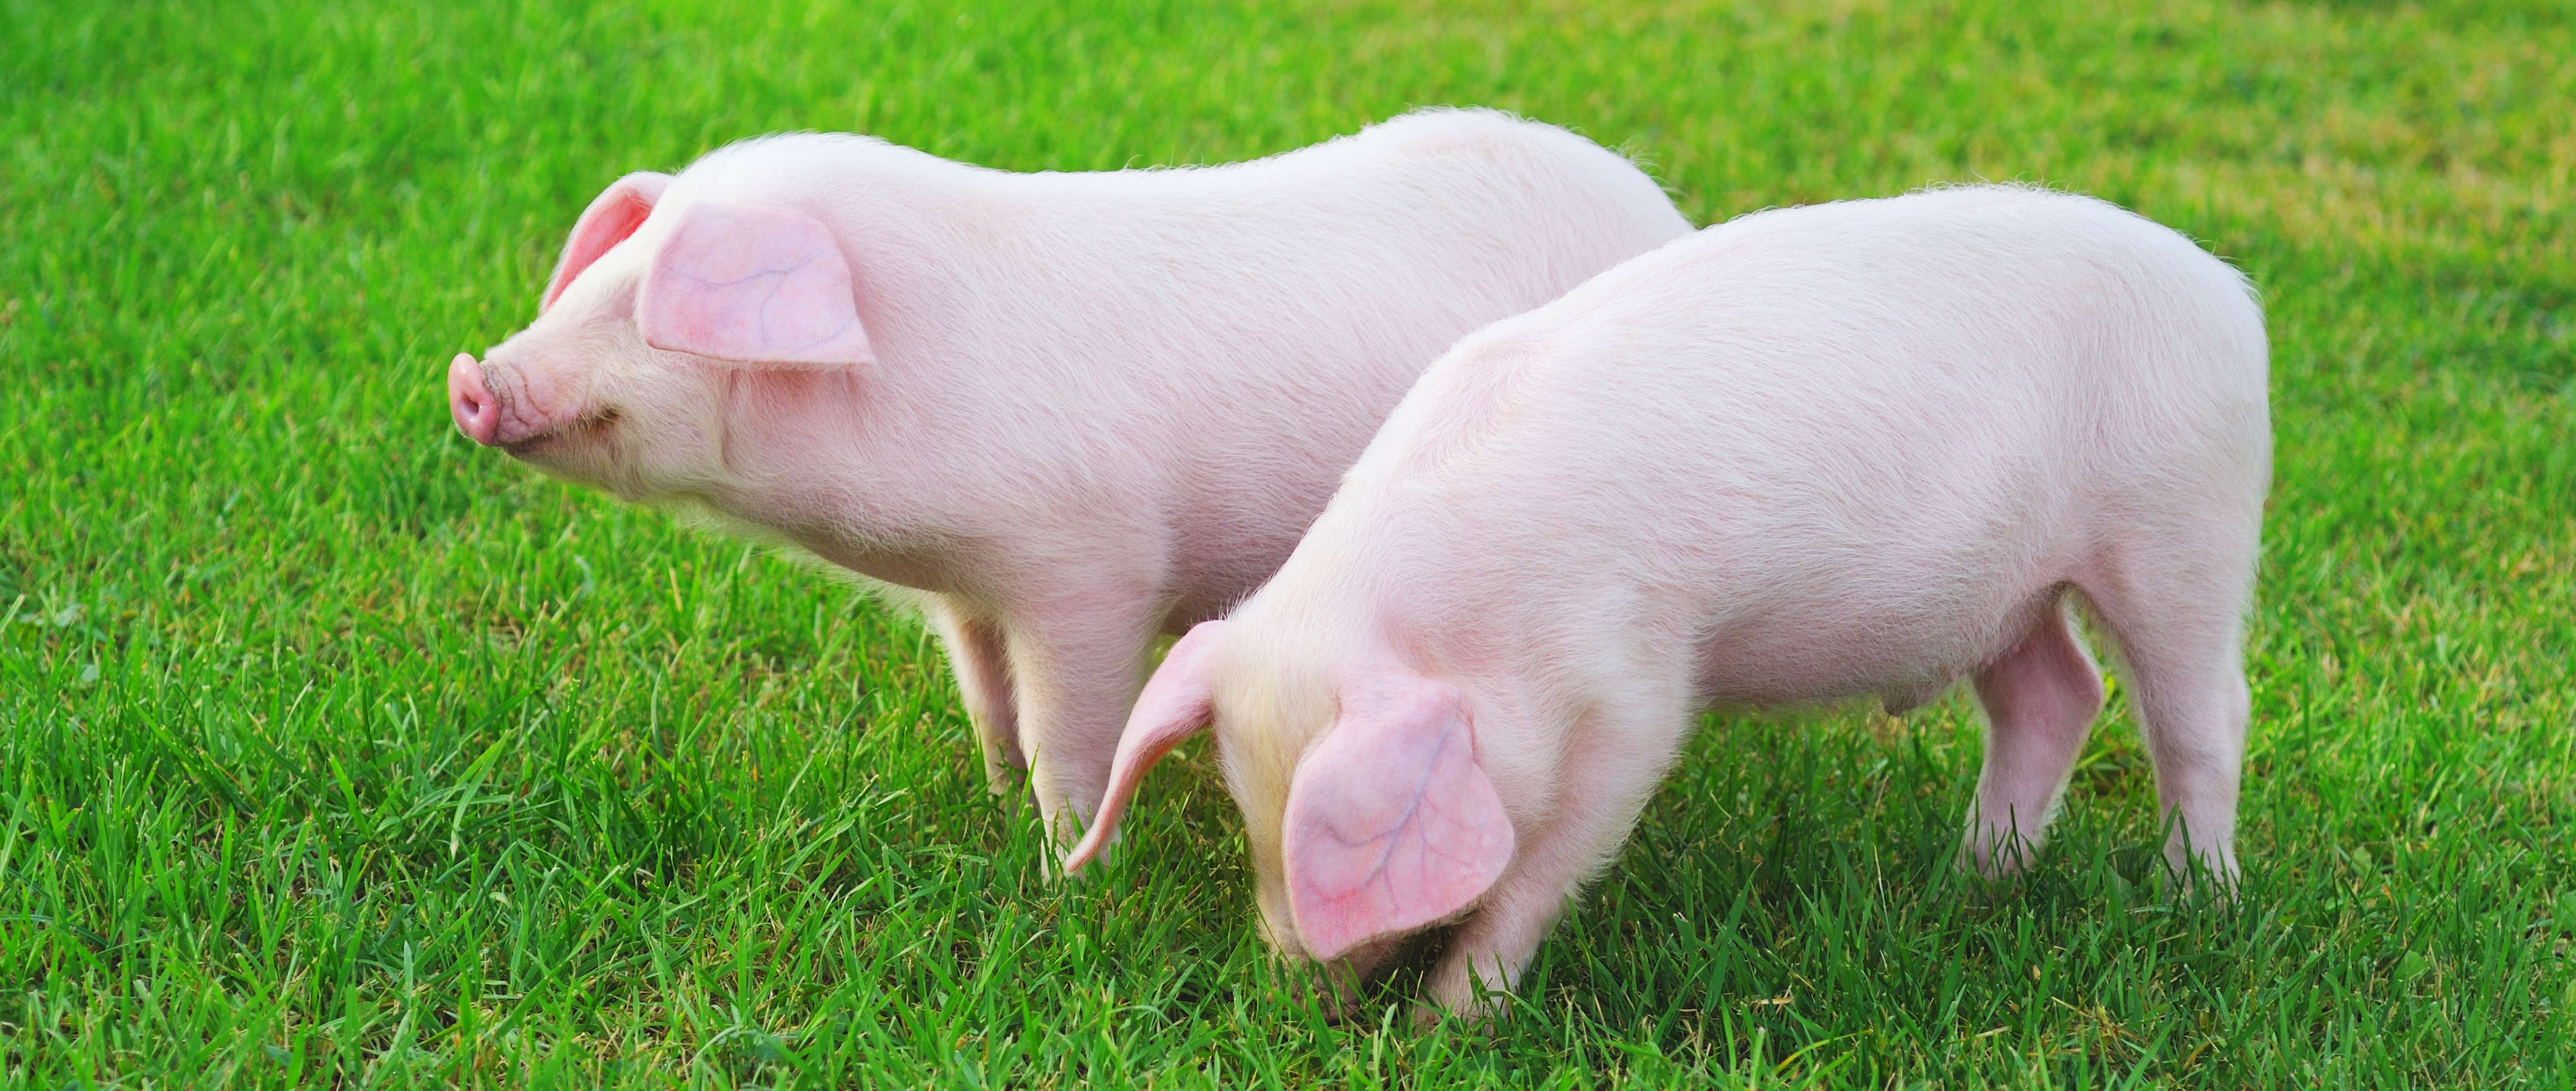 Two small pigs on a green grass